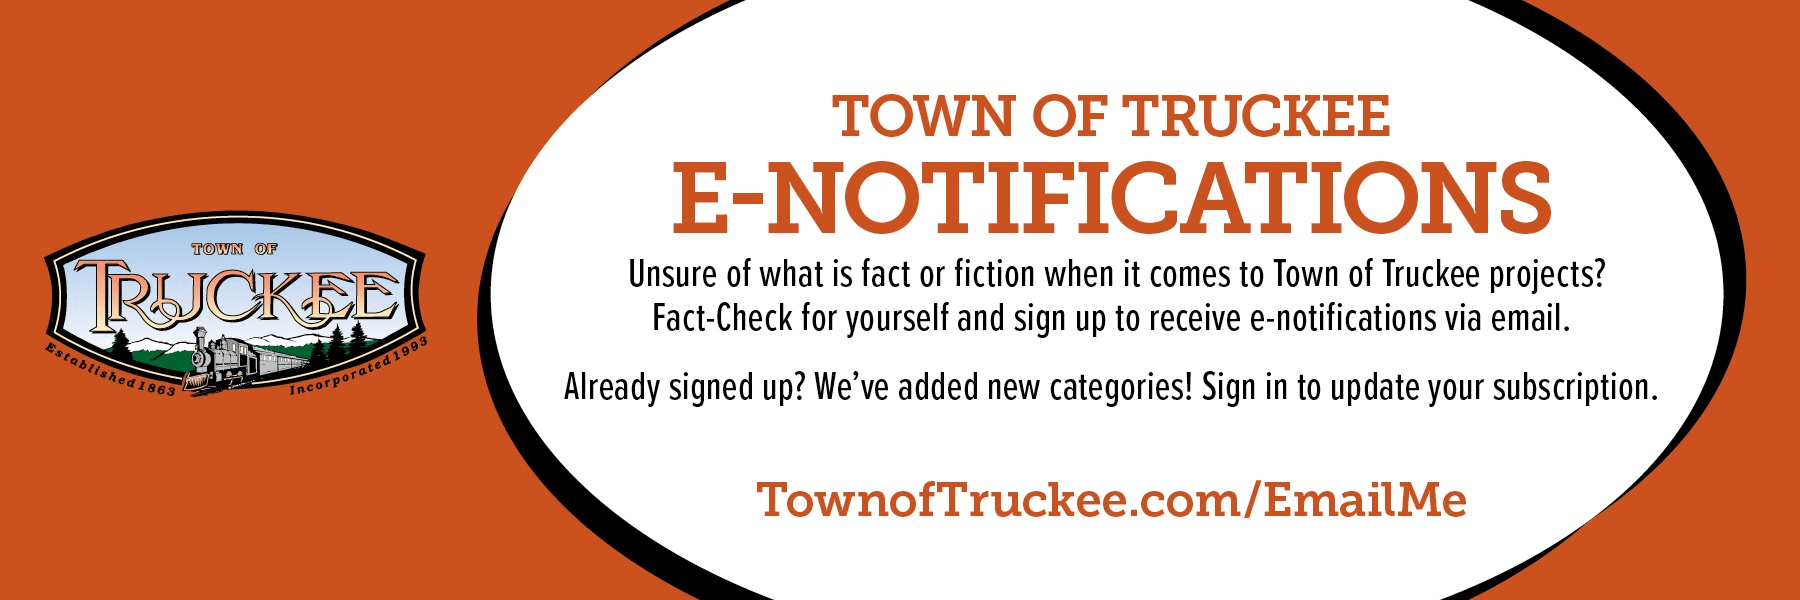 Town of Truckee e-notifications banner